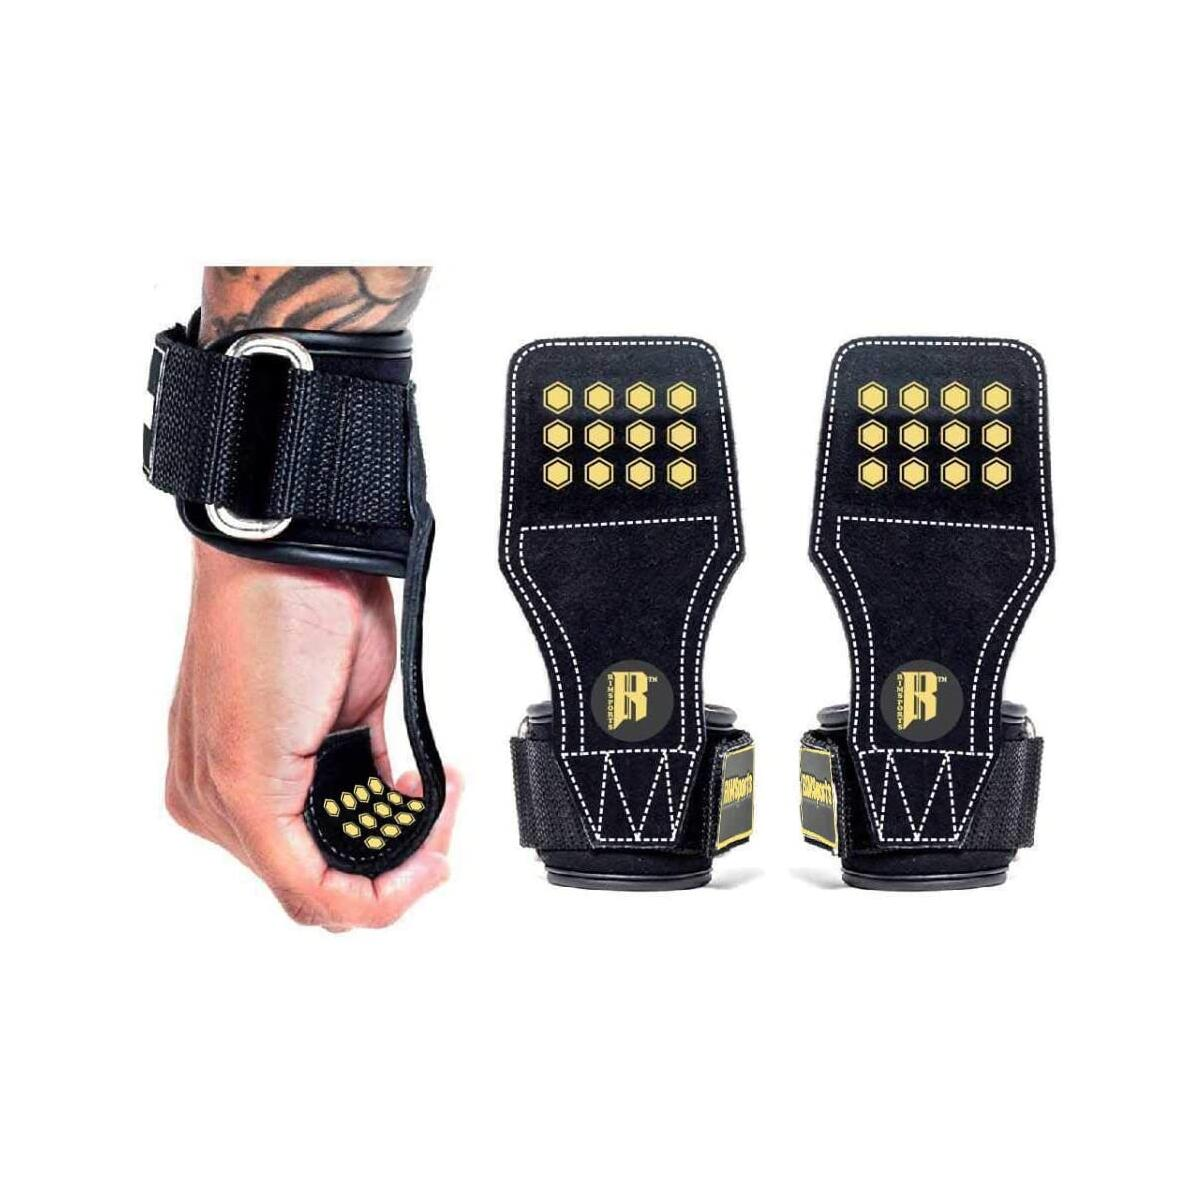 Weight Lifting Grips with Wrist Straps, Weight Lifting Straps with Grip for Deadlifts, Lifting Grips Alternative to Power Hooks, Weight lifting Gloves with Neoprene Padded Wrist Wraps (Gold)